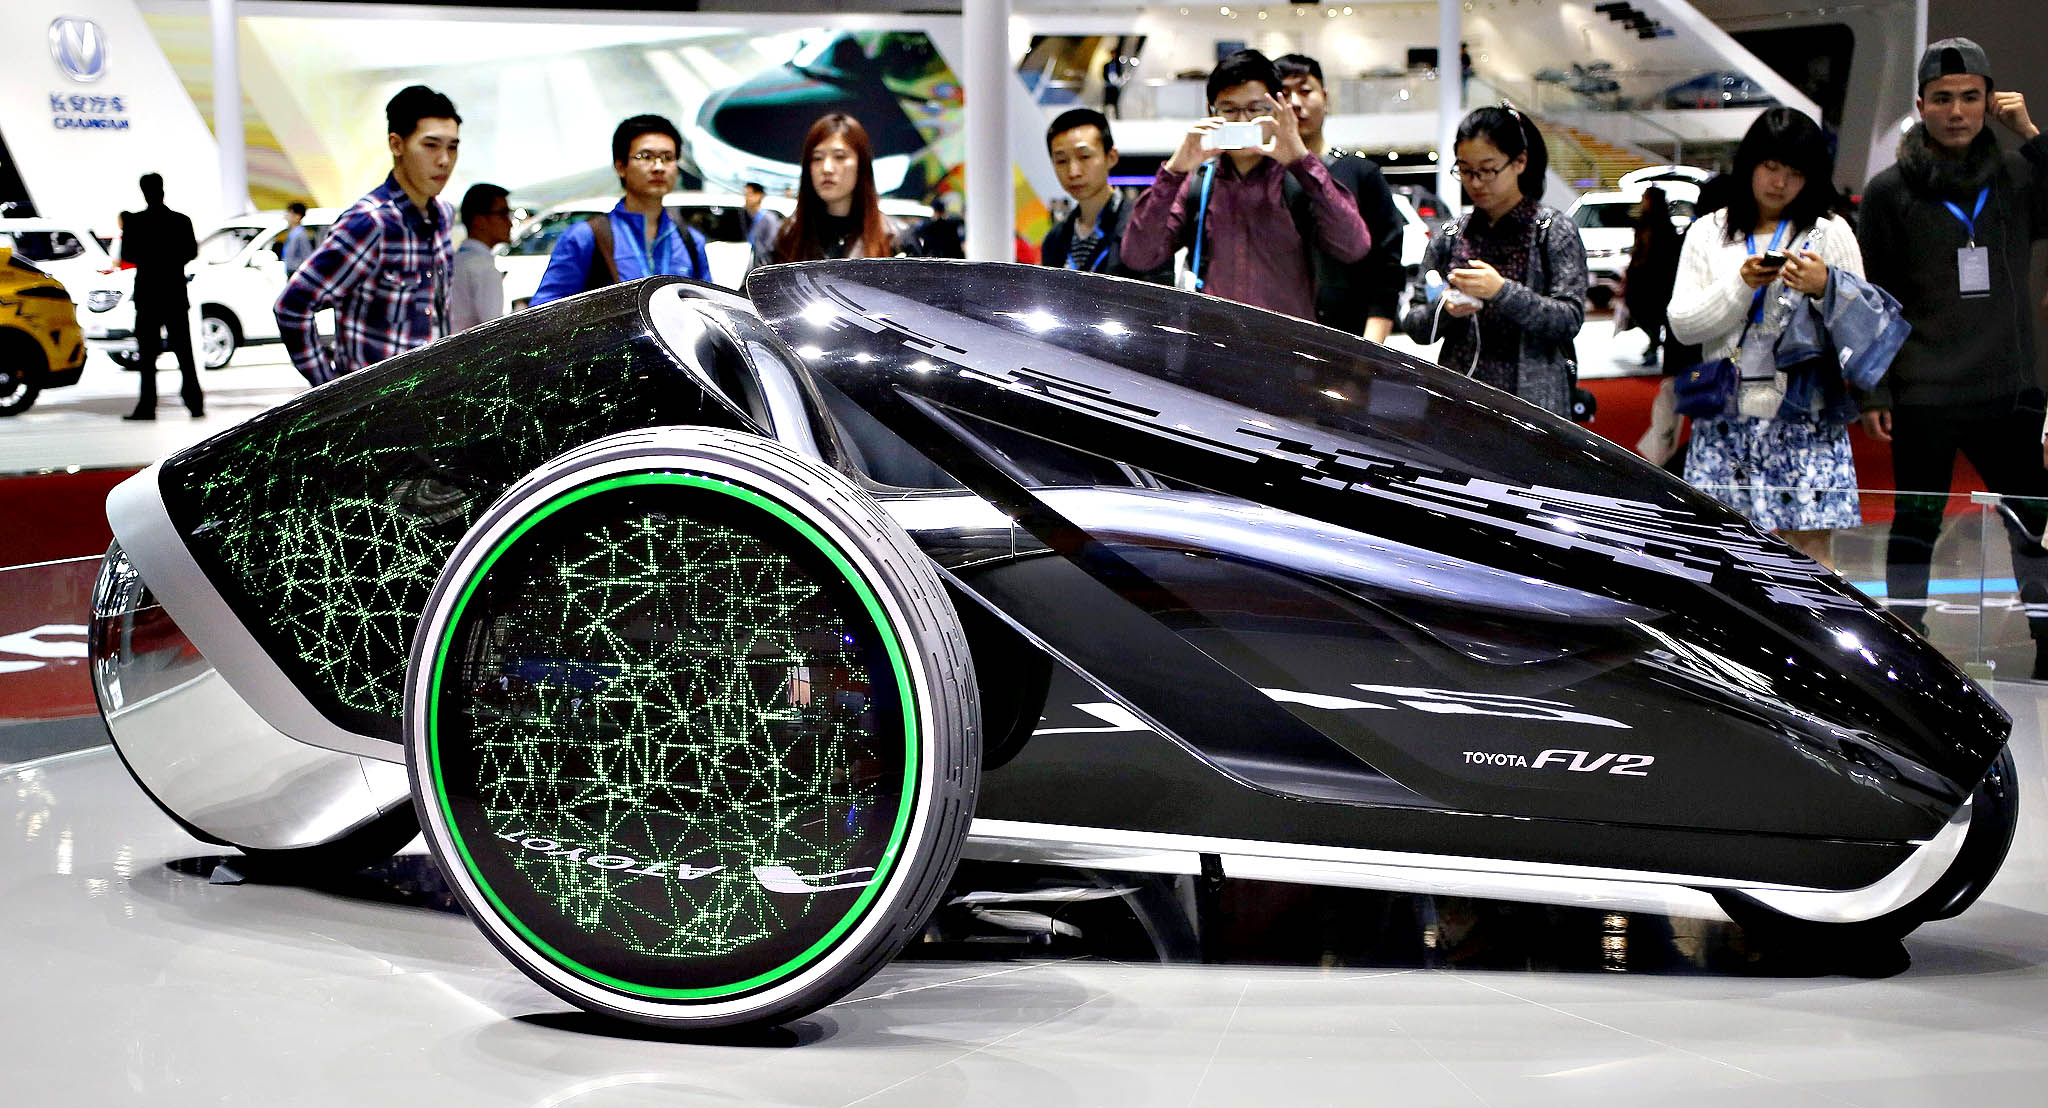 Visitors look at a Toyota FV2 concept car on display at the 16th Shanghai International Automobile Industry Exhibition in Shanghai, China, Tuesday.  The Auto Shanghai international car show opened to the media and runs until 29 April